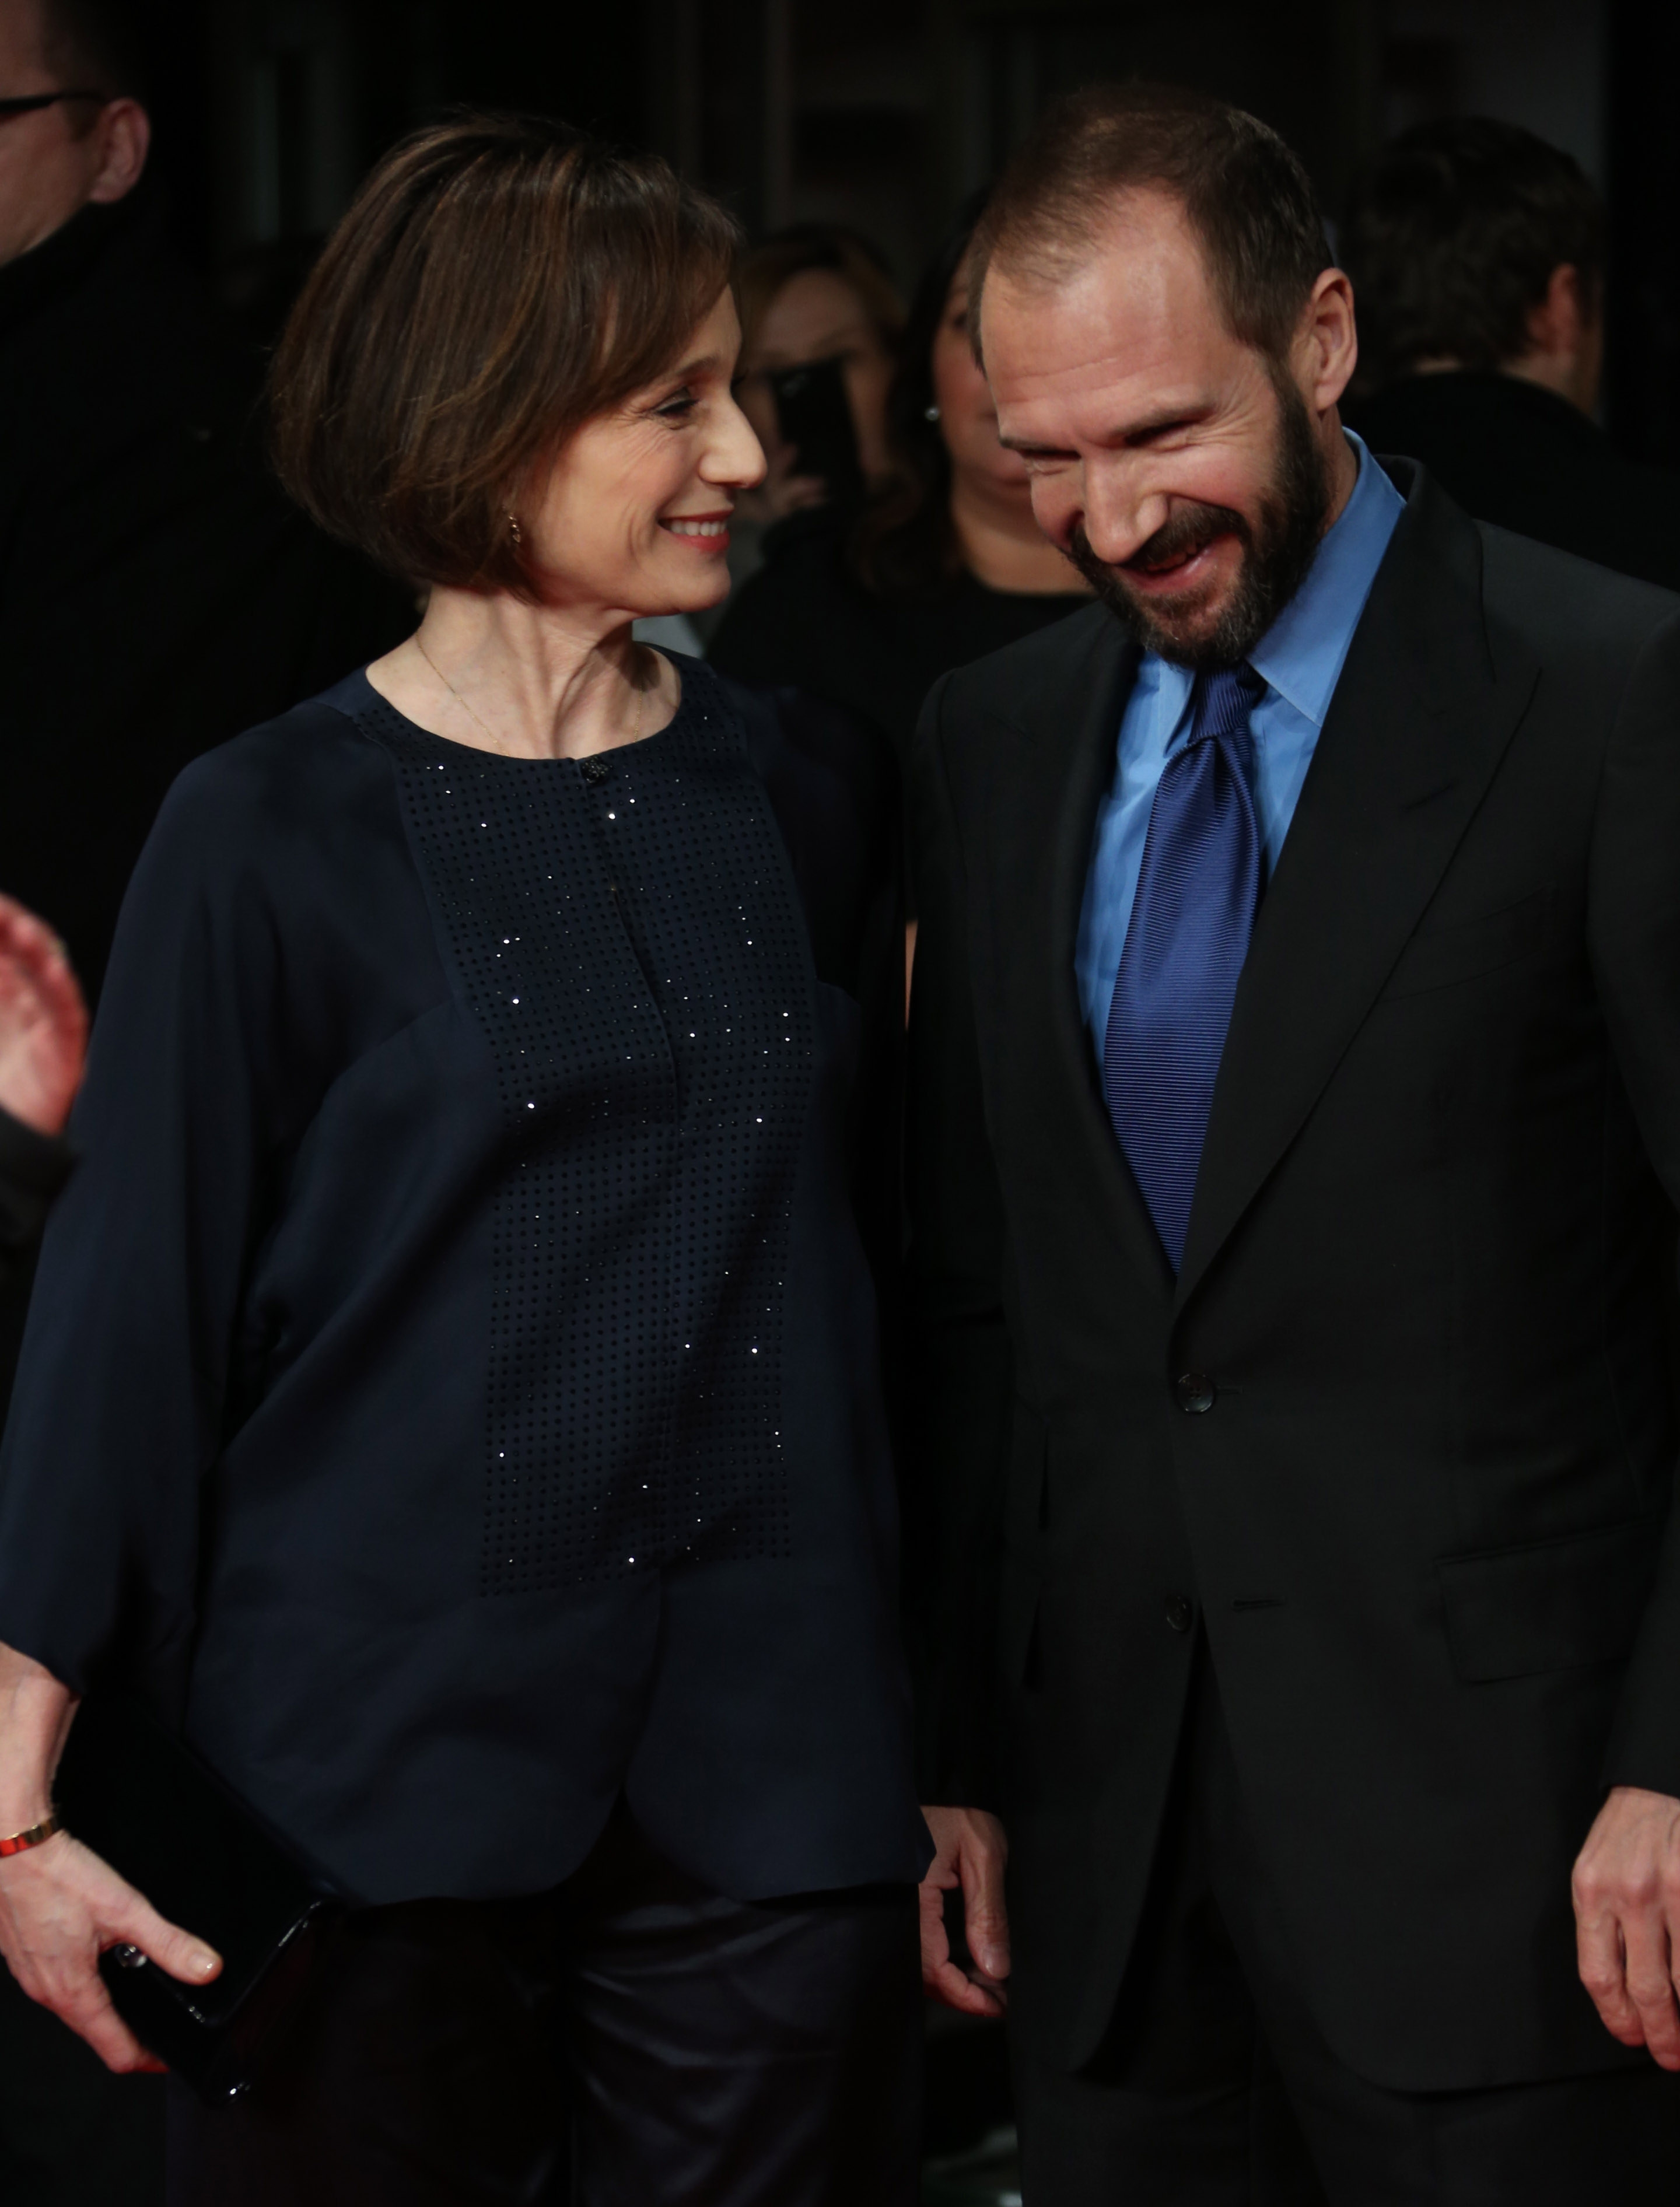 "Visibly happy: Actors Kristin Scott Thomas and Ralph Fiennes arrive on the red carpet Monday for the British premiere of ""The Invisible Woman"" in London."